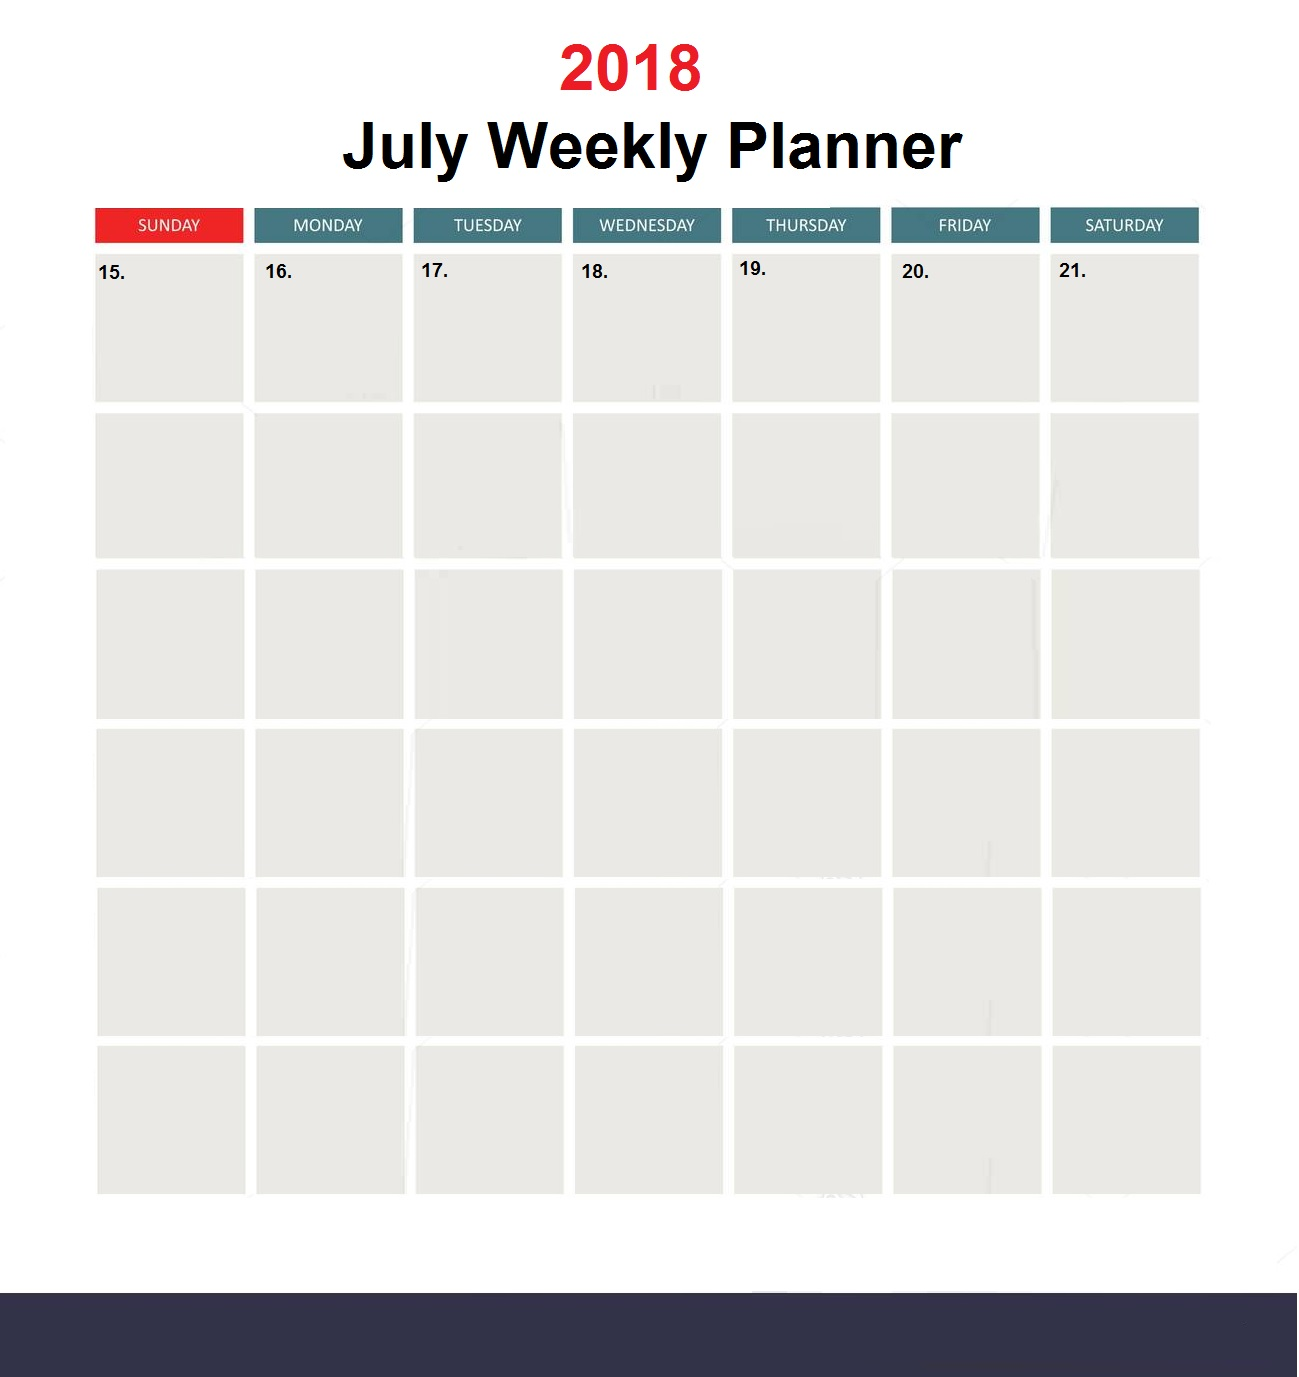 Printable Weekly July 2018 Planner Calendar